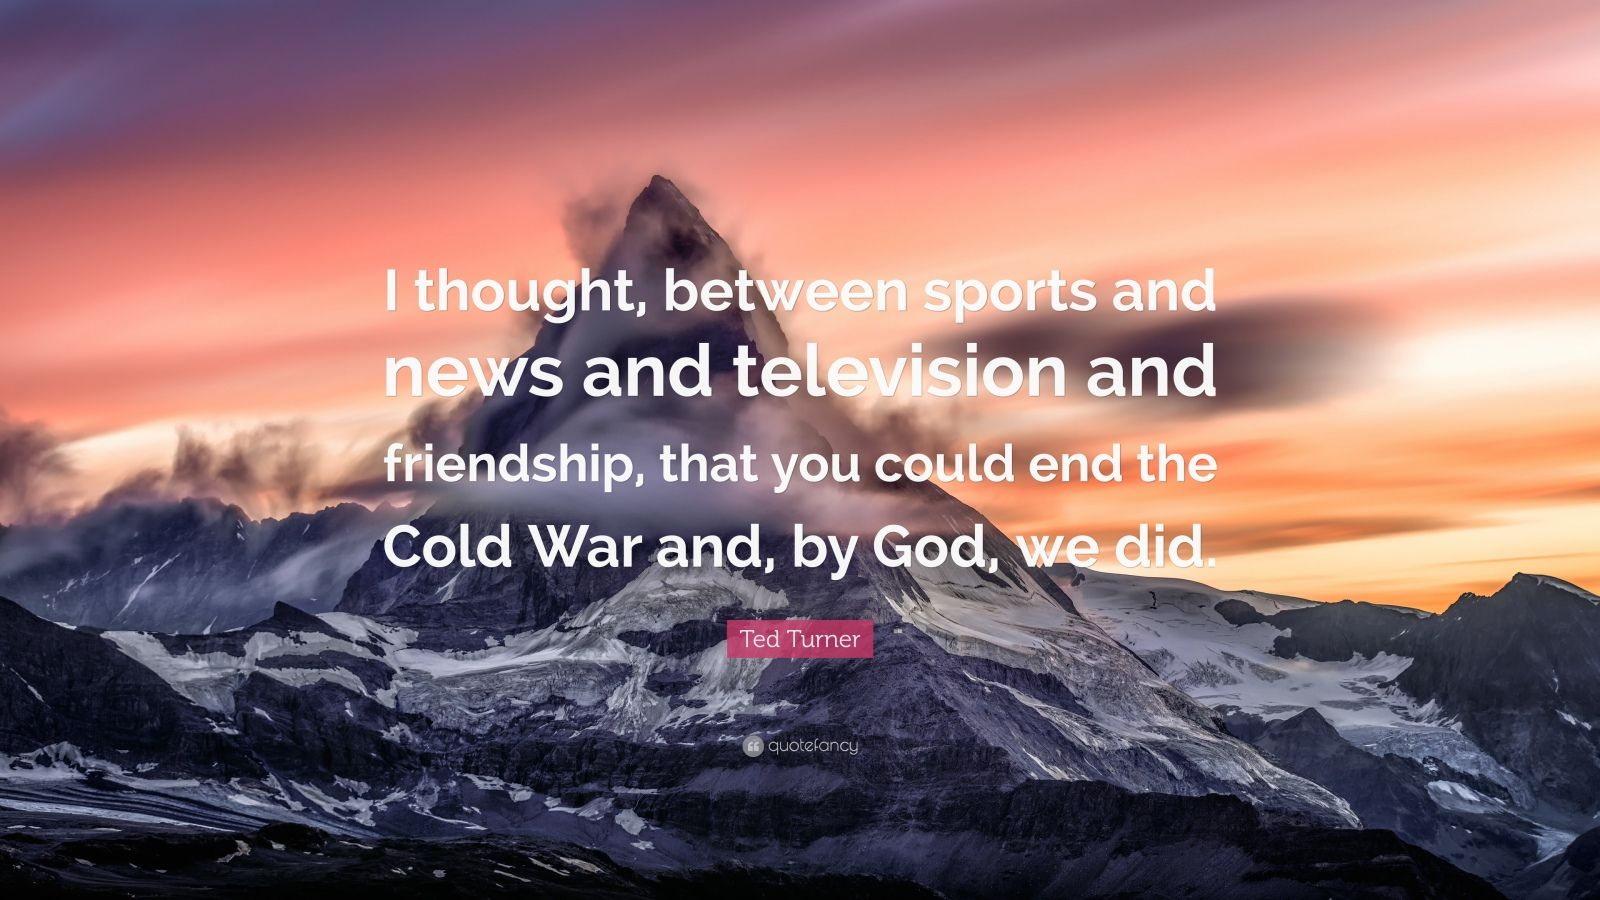 """Ted Turner Quote: """"I thought, between sports and news and television and friendship, that you could end the Cold War and, by God, we did."""""""